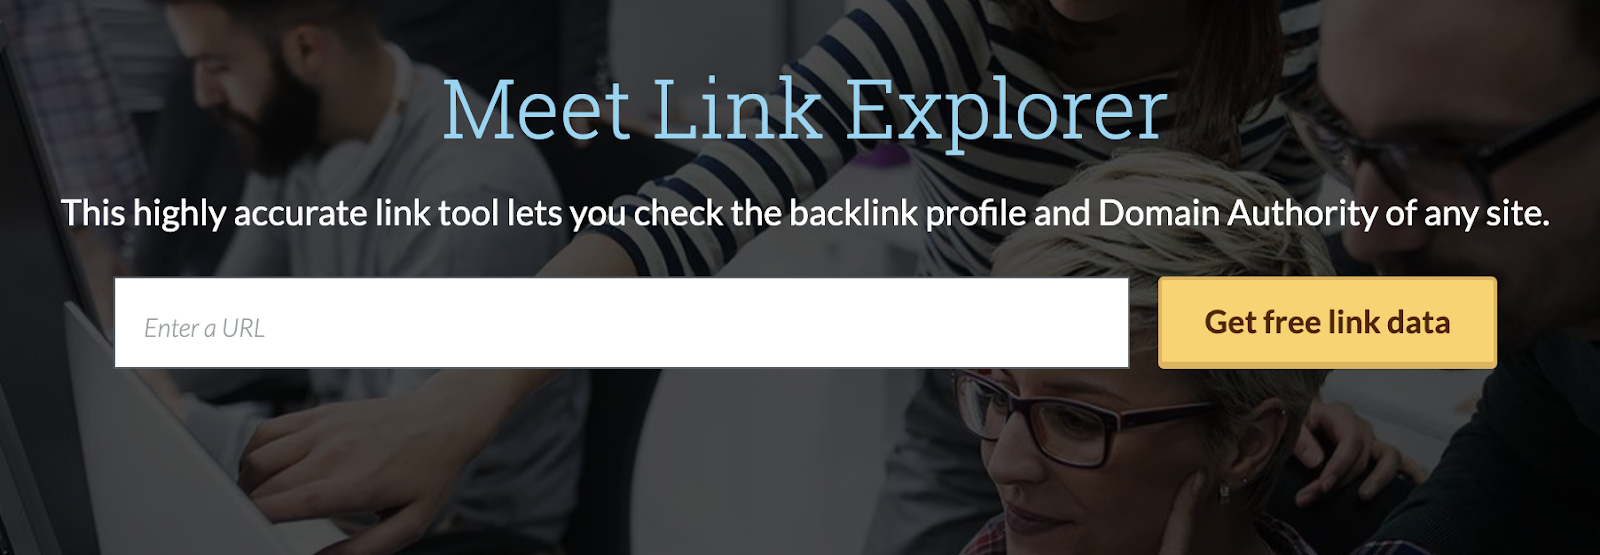 Backlink checking